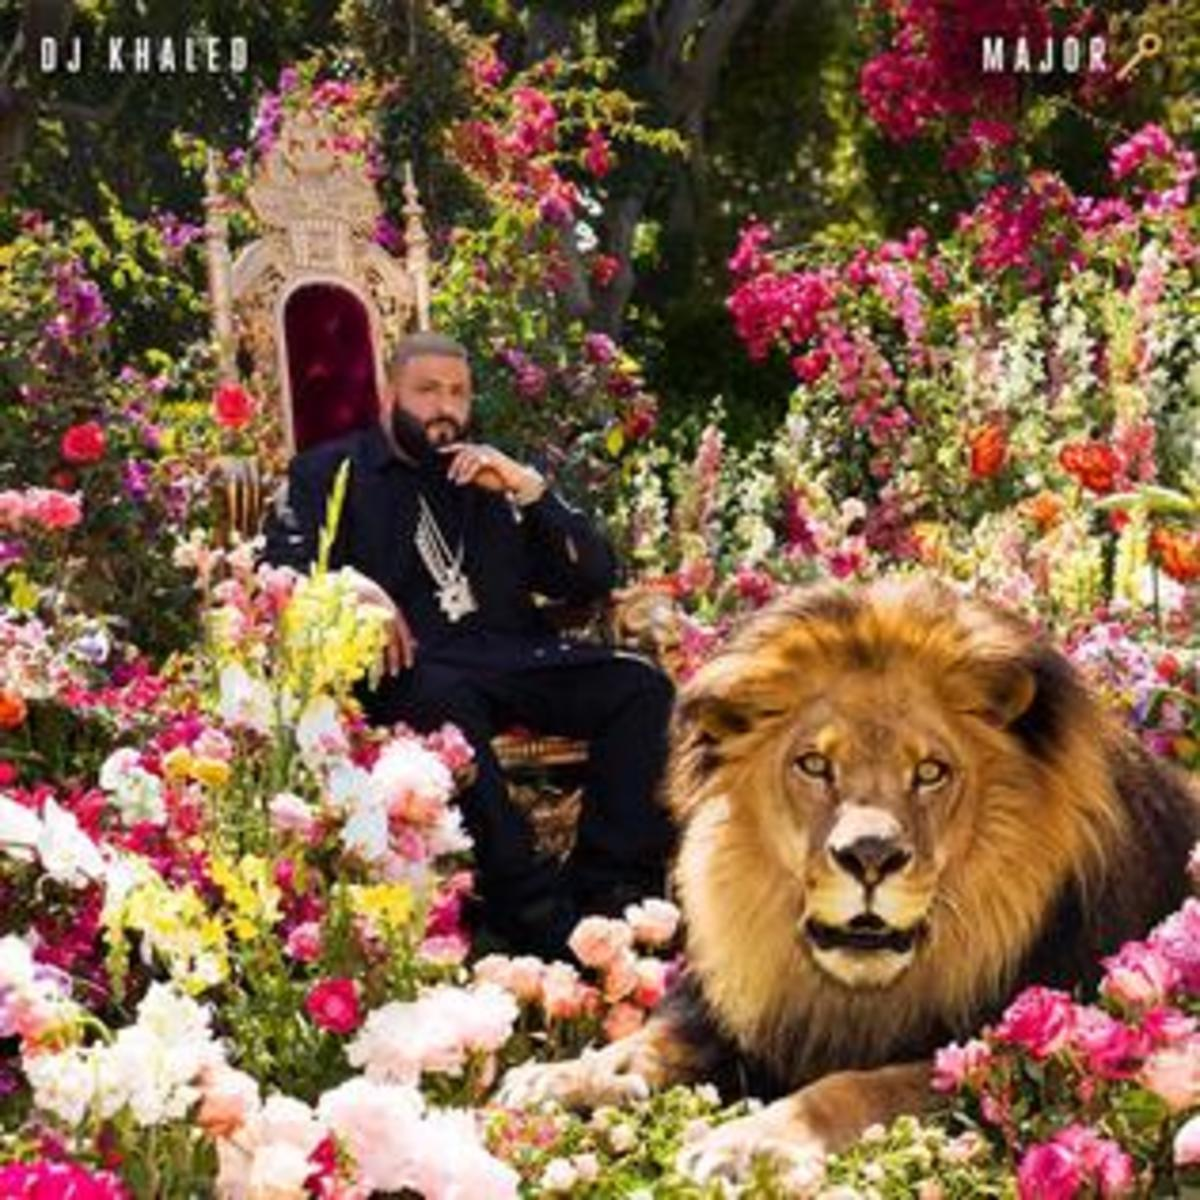 Khaled's 'Major Key' has minor errors: 3/5 stars